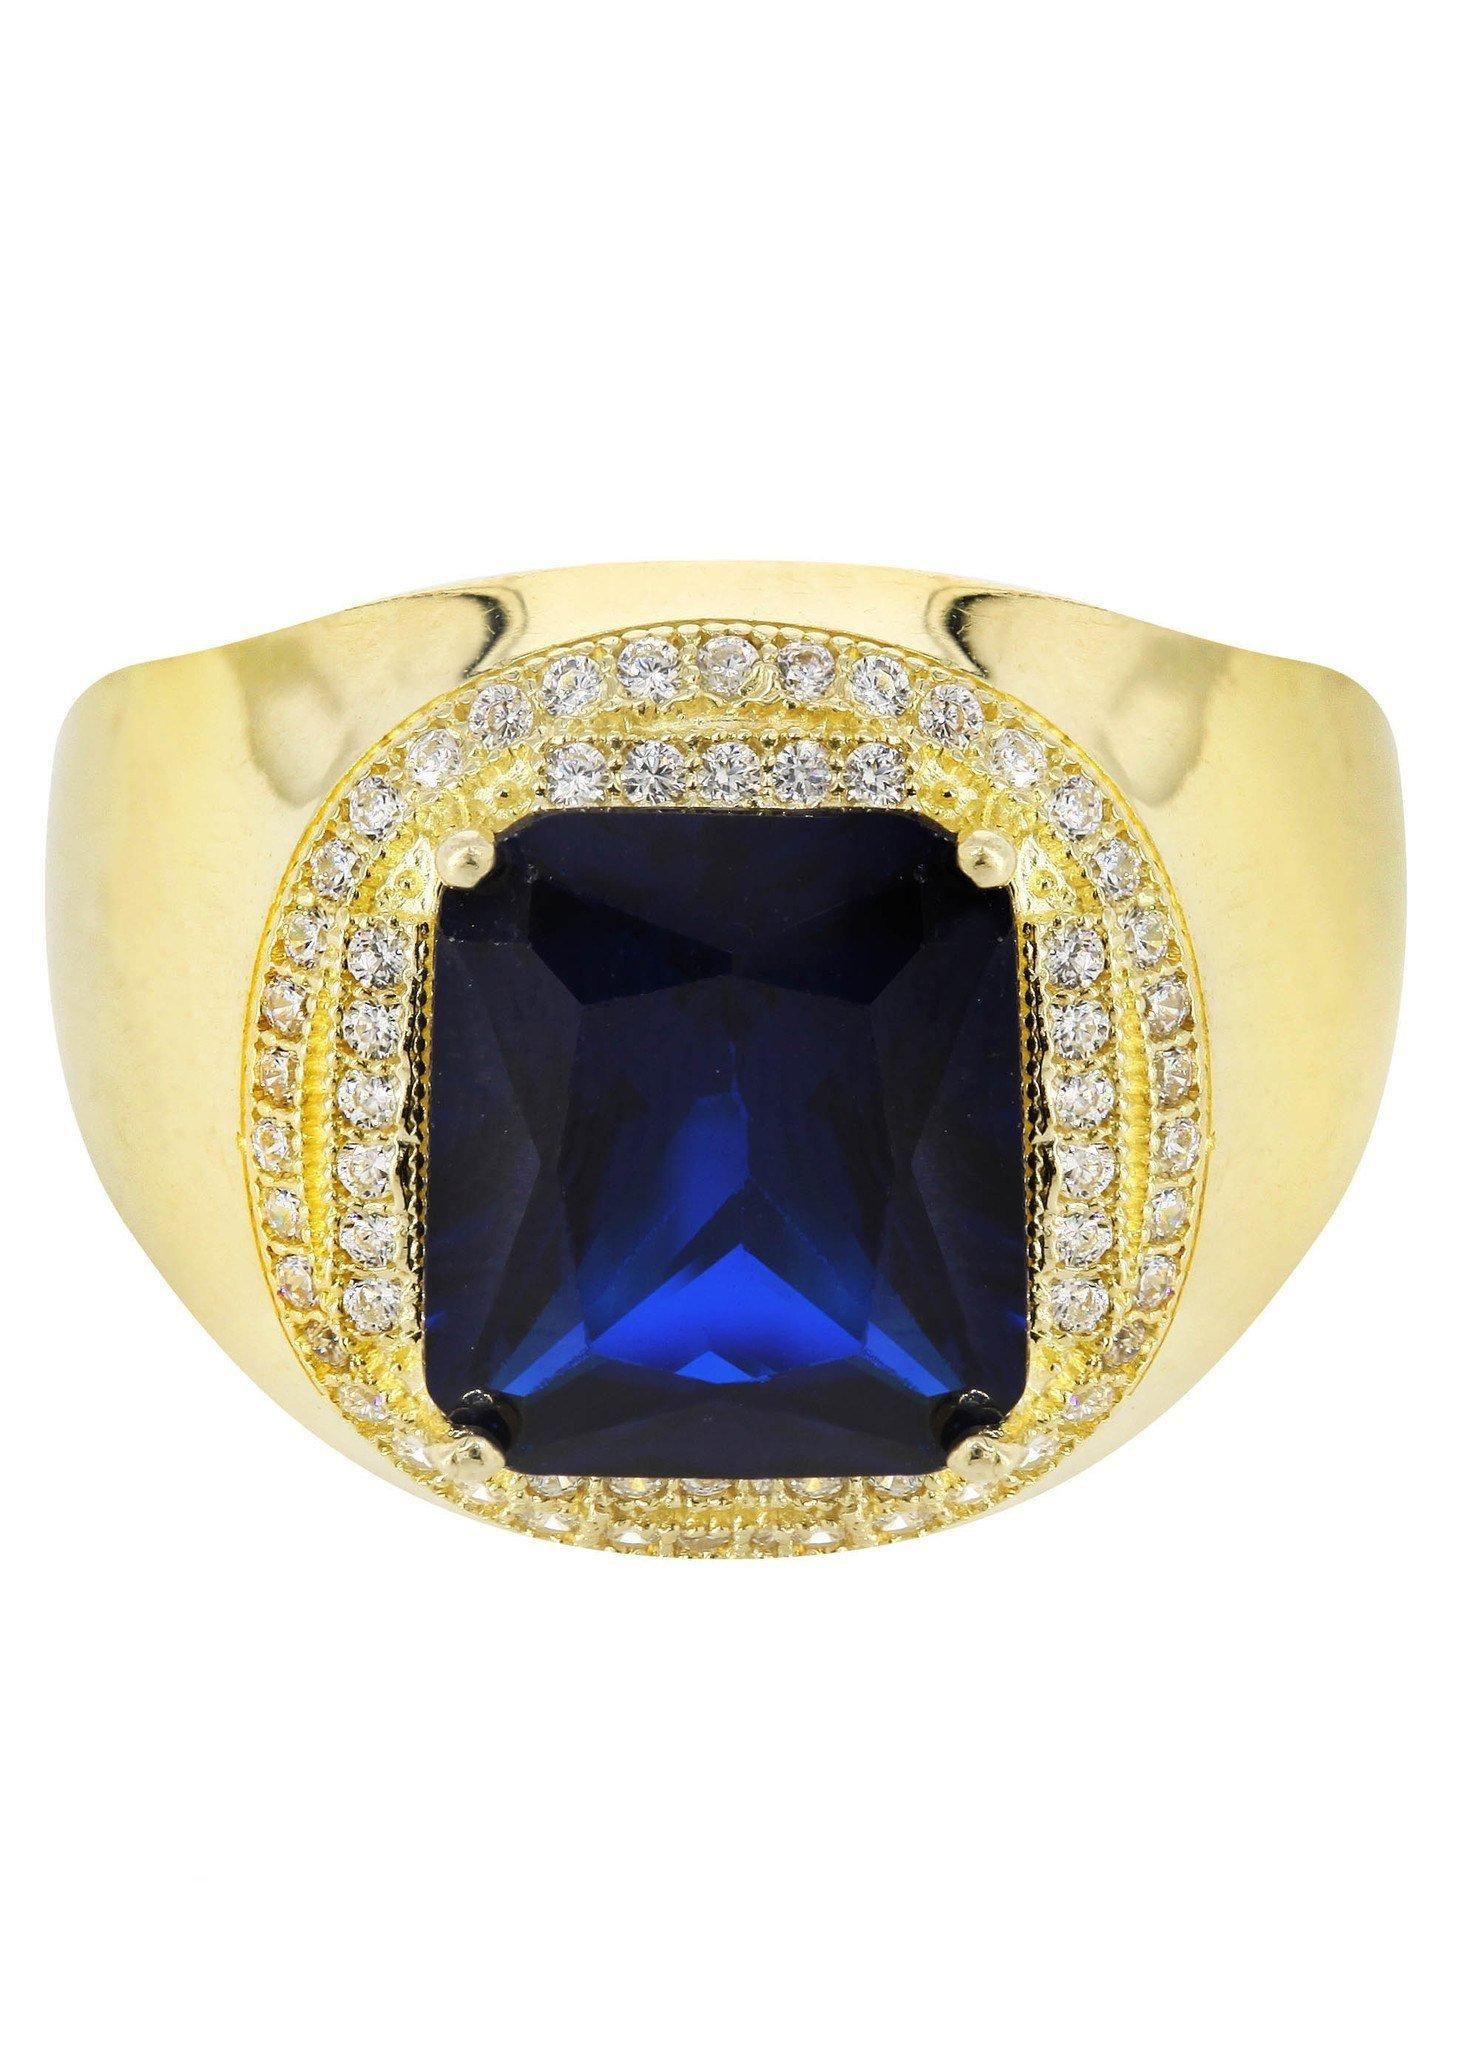 Frostnyc frost nyc sapphire u cz k yellow gold mens ring